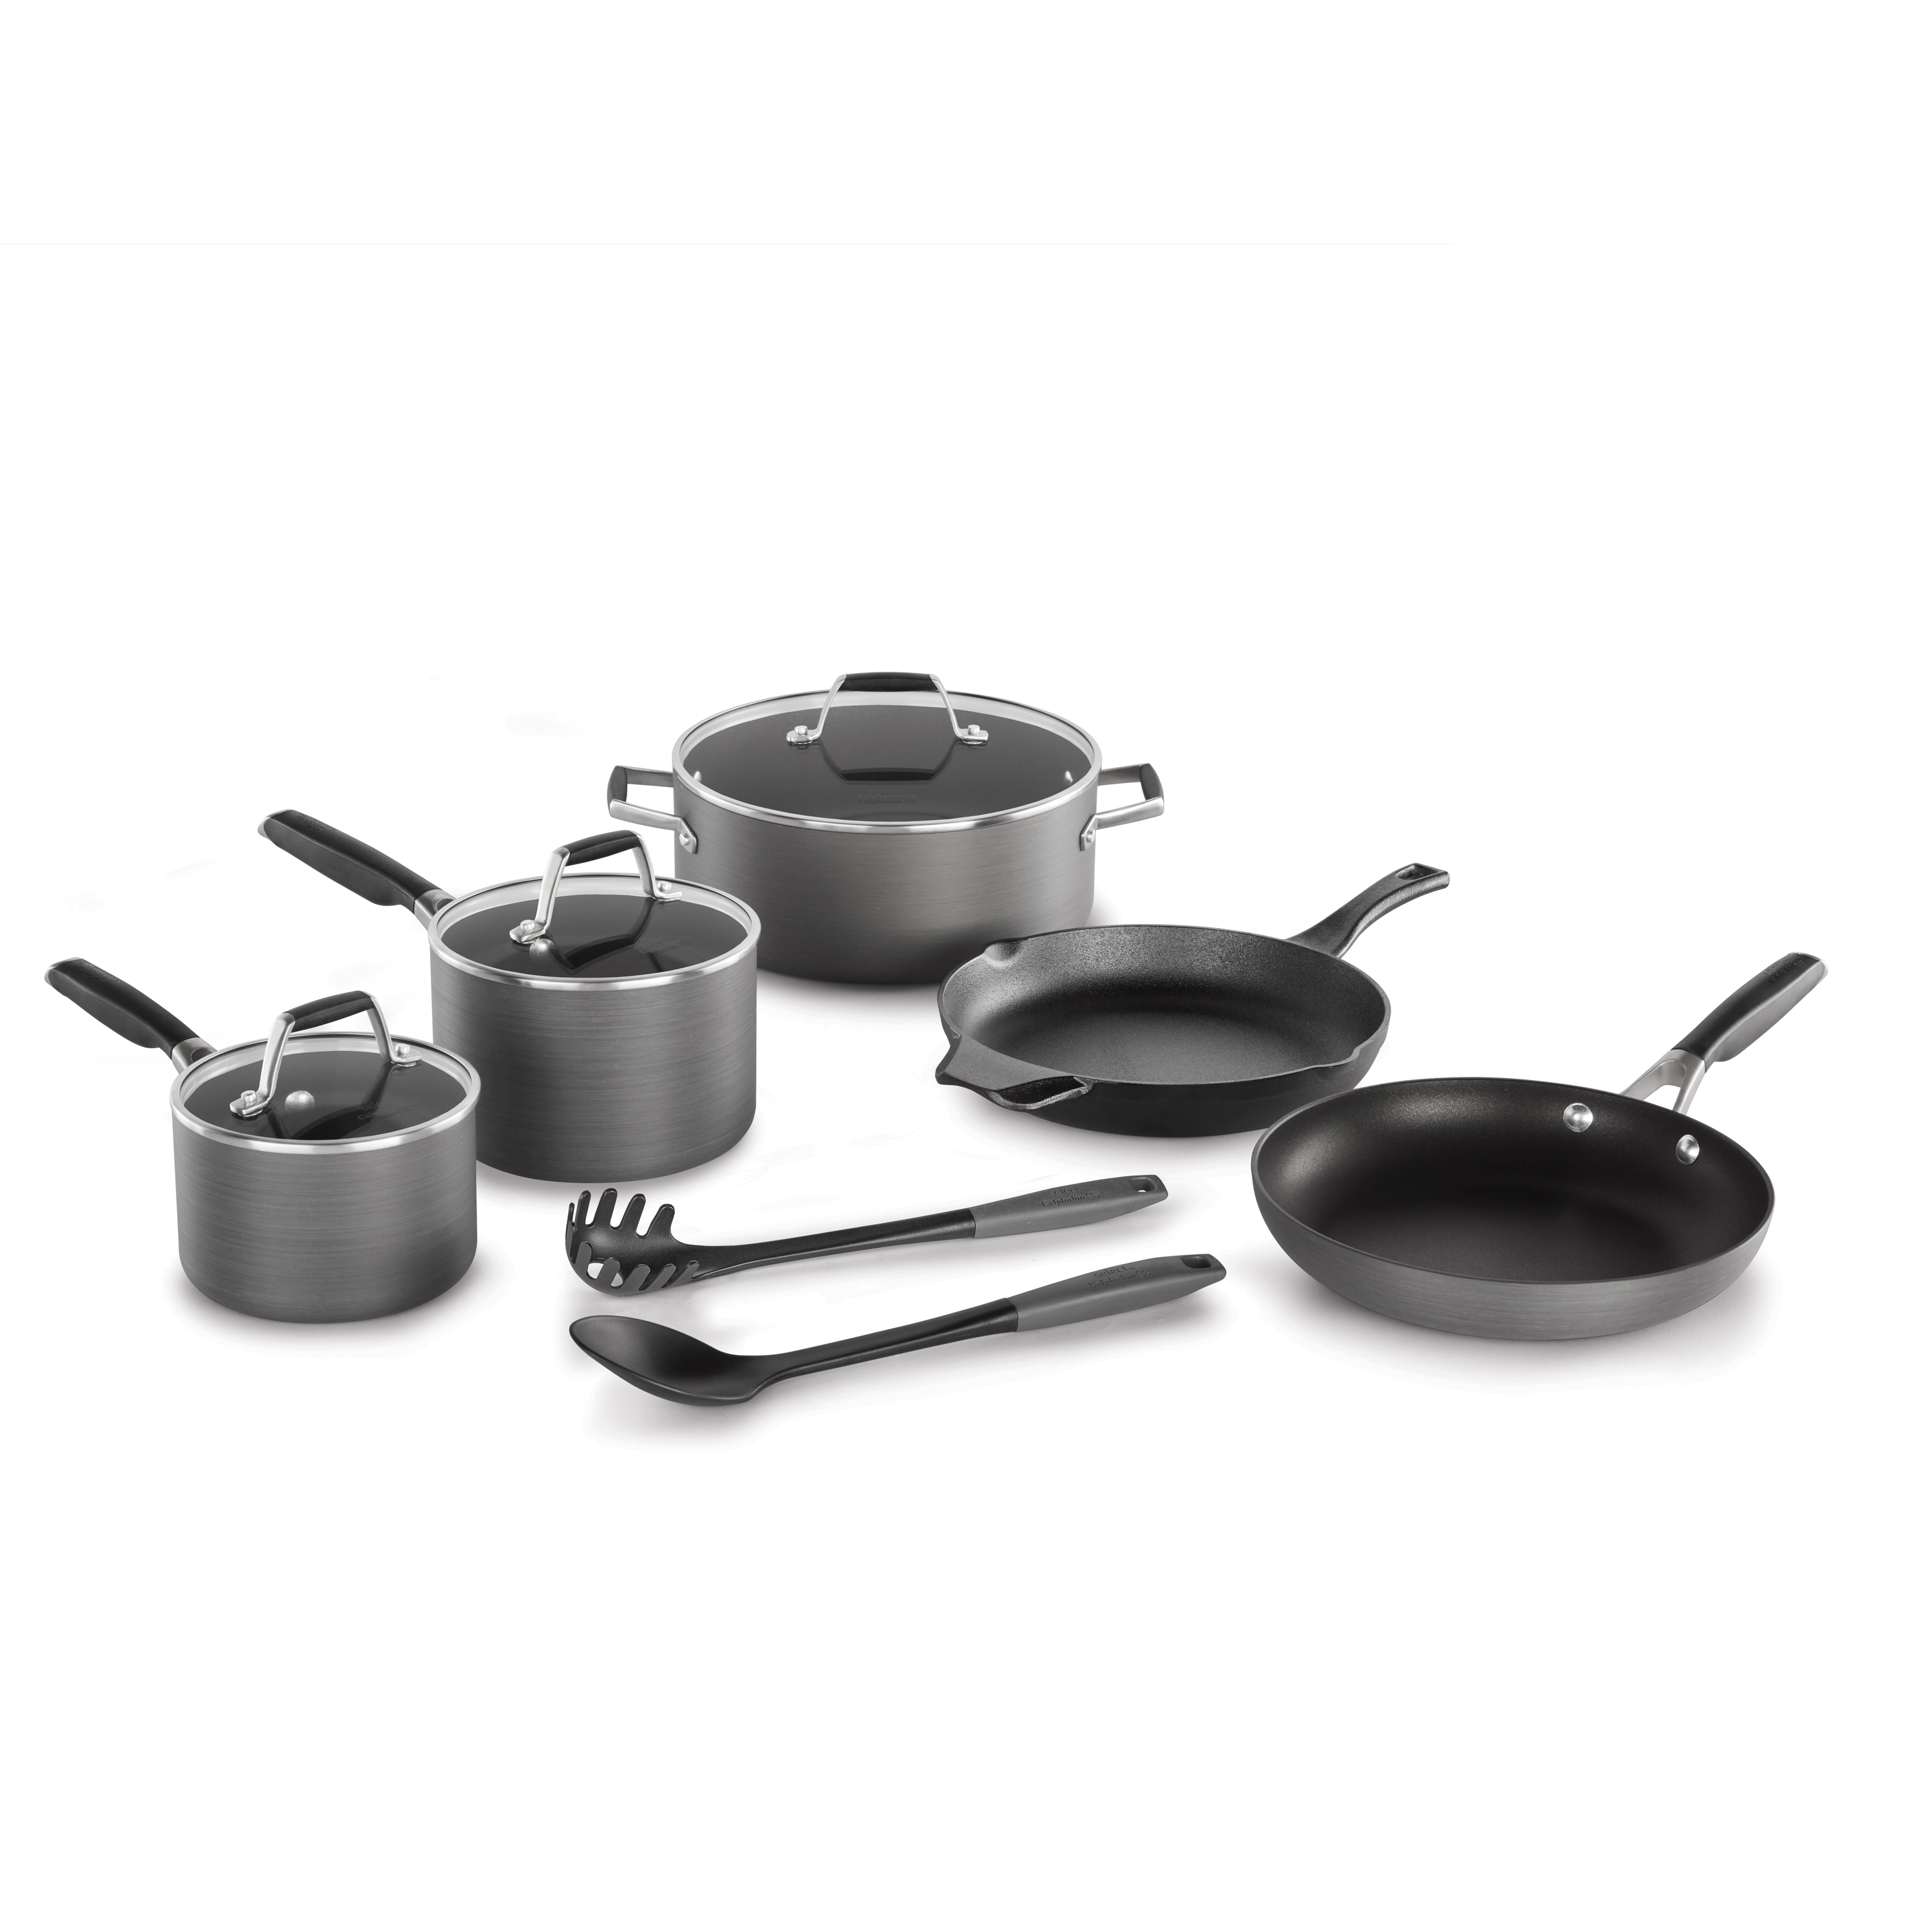 Select by Calphalon Hard-Anodized Nonstick 10-Piece Cookware Set